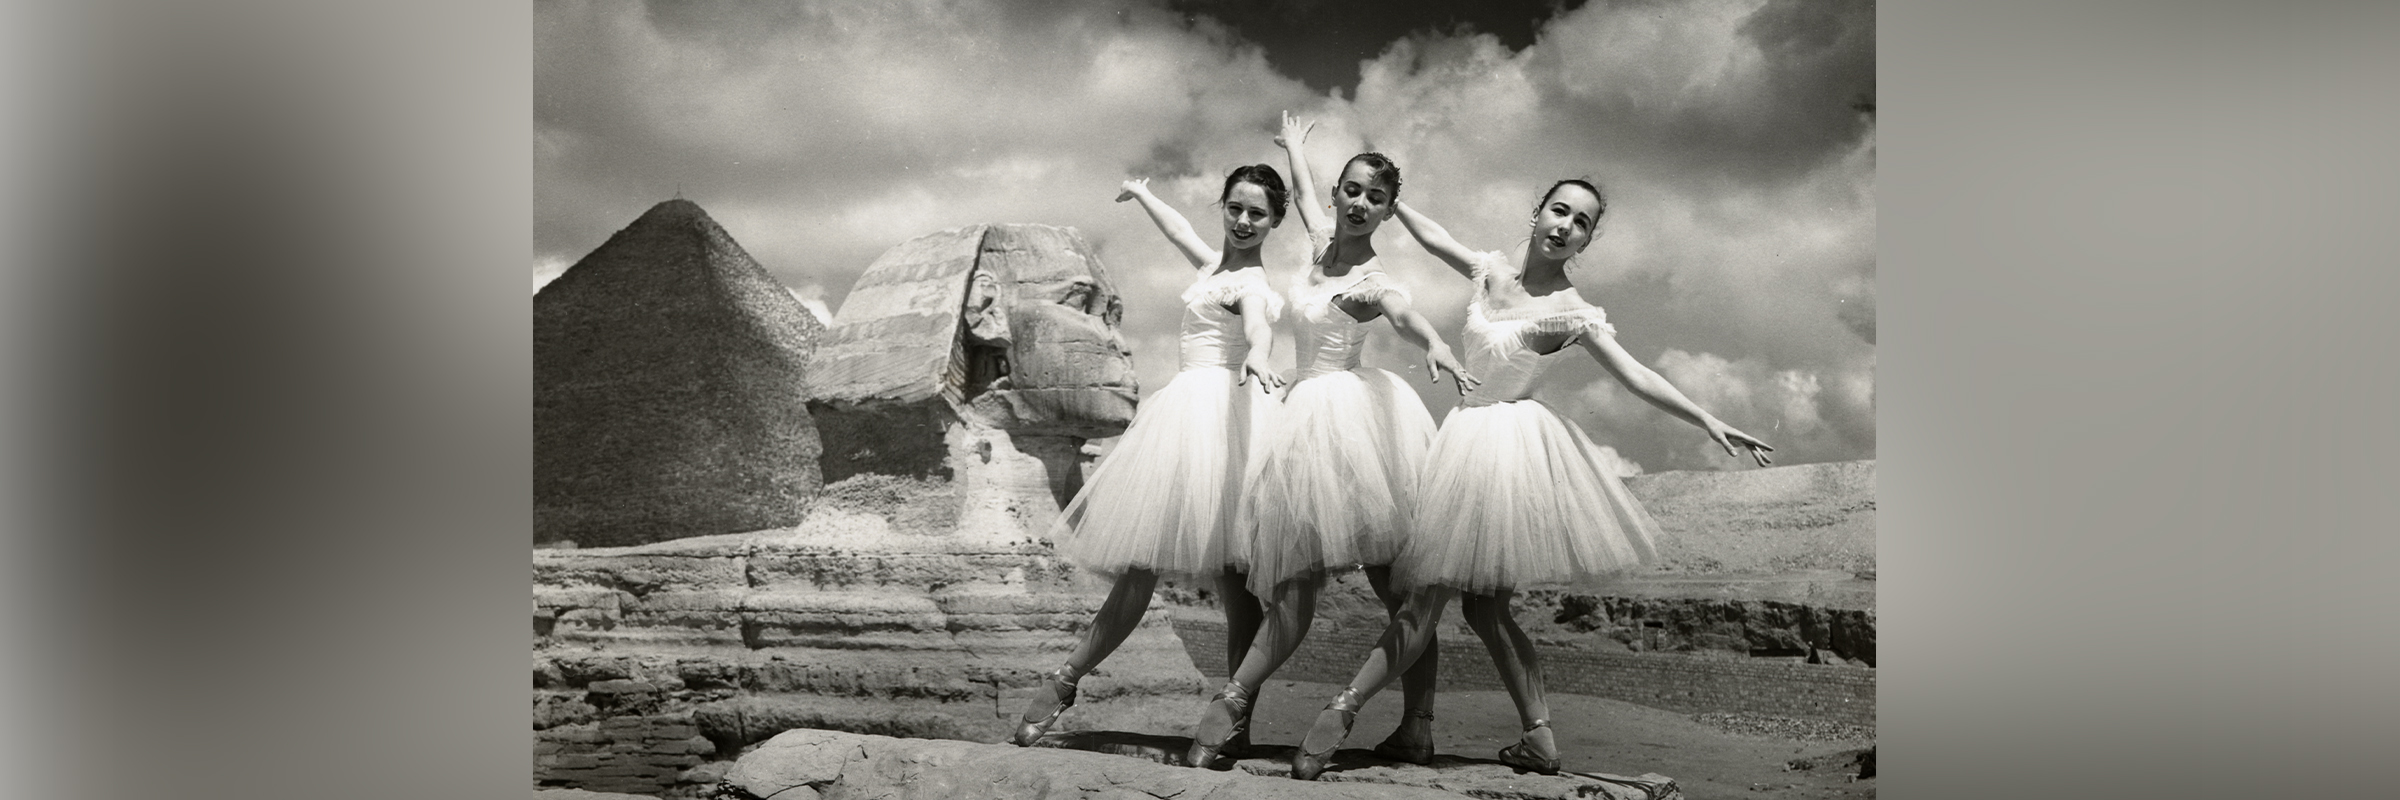 Louise Lawler, Constance Coler, and Sue Loyd near the Sphinx in Giza, Egypt as part of San Francisco Ballet's 1959 Middle East Tour